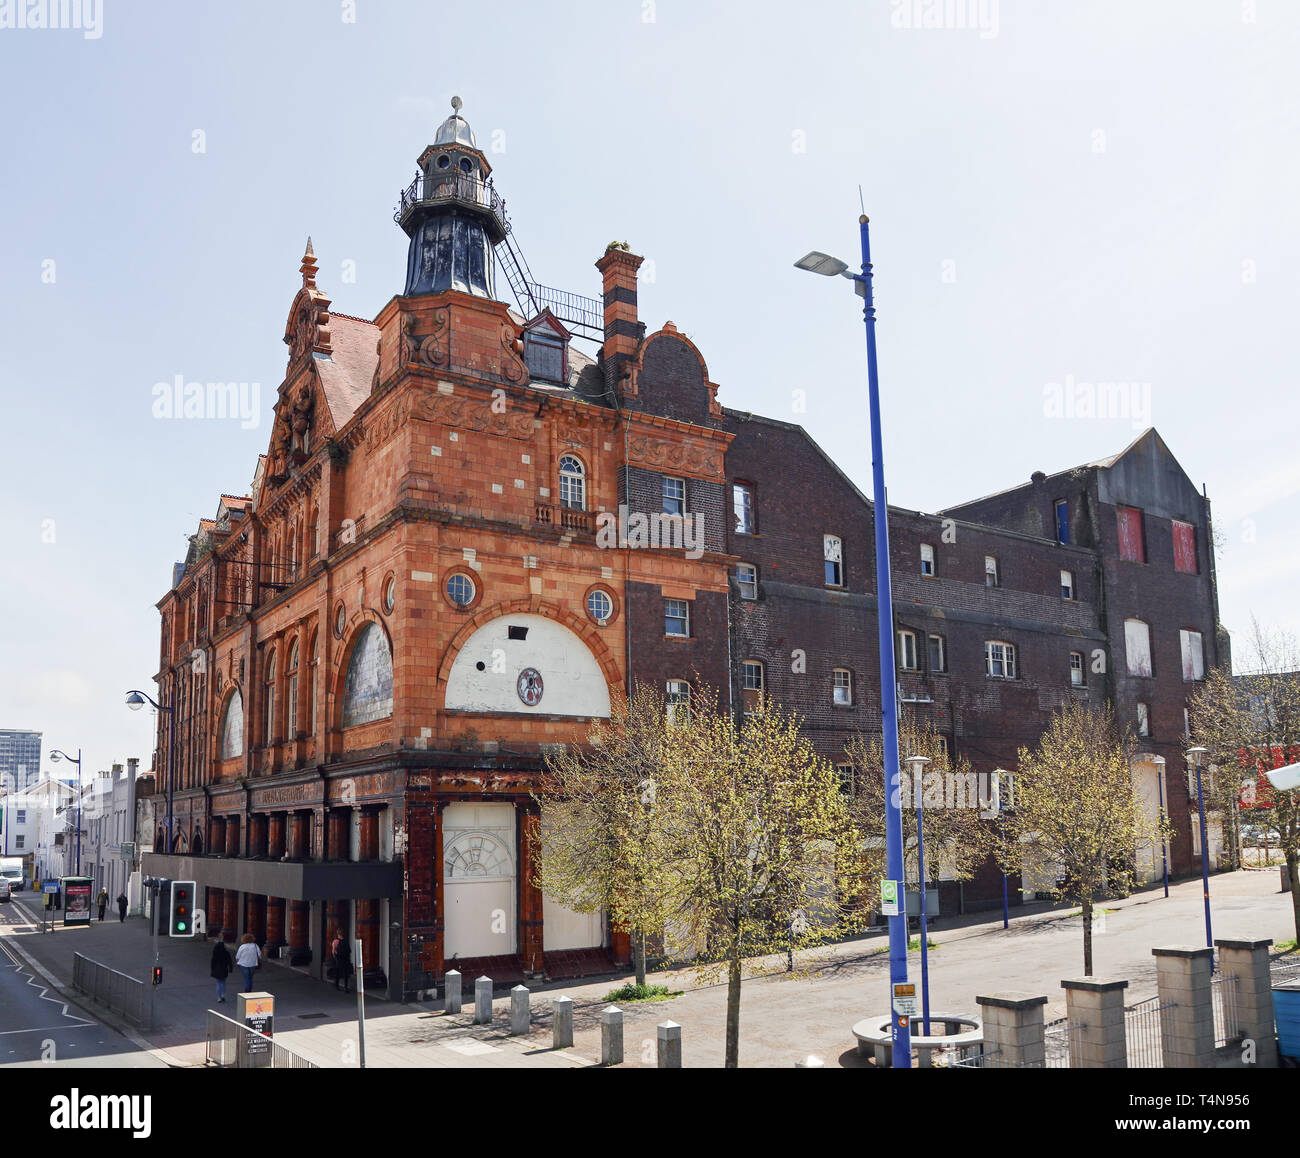 Palace Theatre, Union Street, Plymouth on at risks register. Victorian building. Formerly Academy nightclub. From Ocean City Sights open top bus - Stock Image